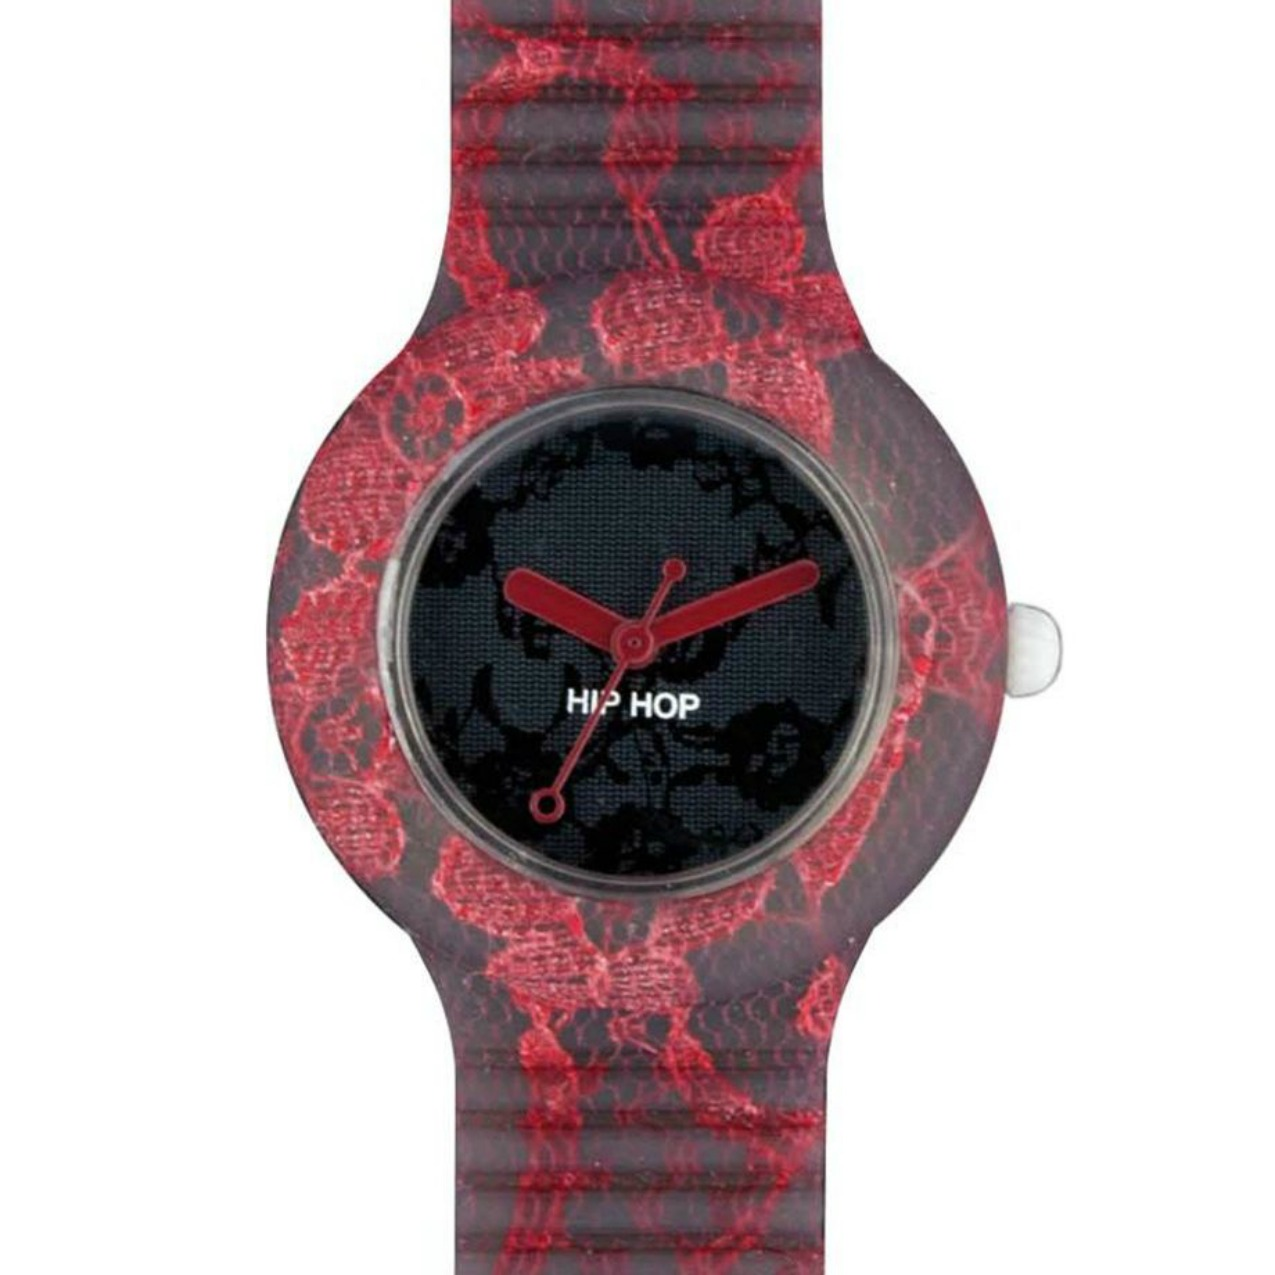 Hip Hop watches: lo stile del tempo, alessia milanese, thechilicool, lifestyle blog